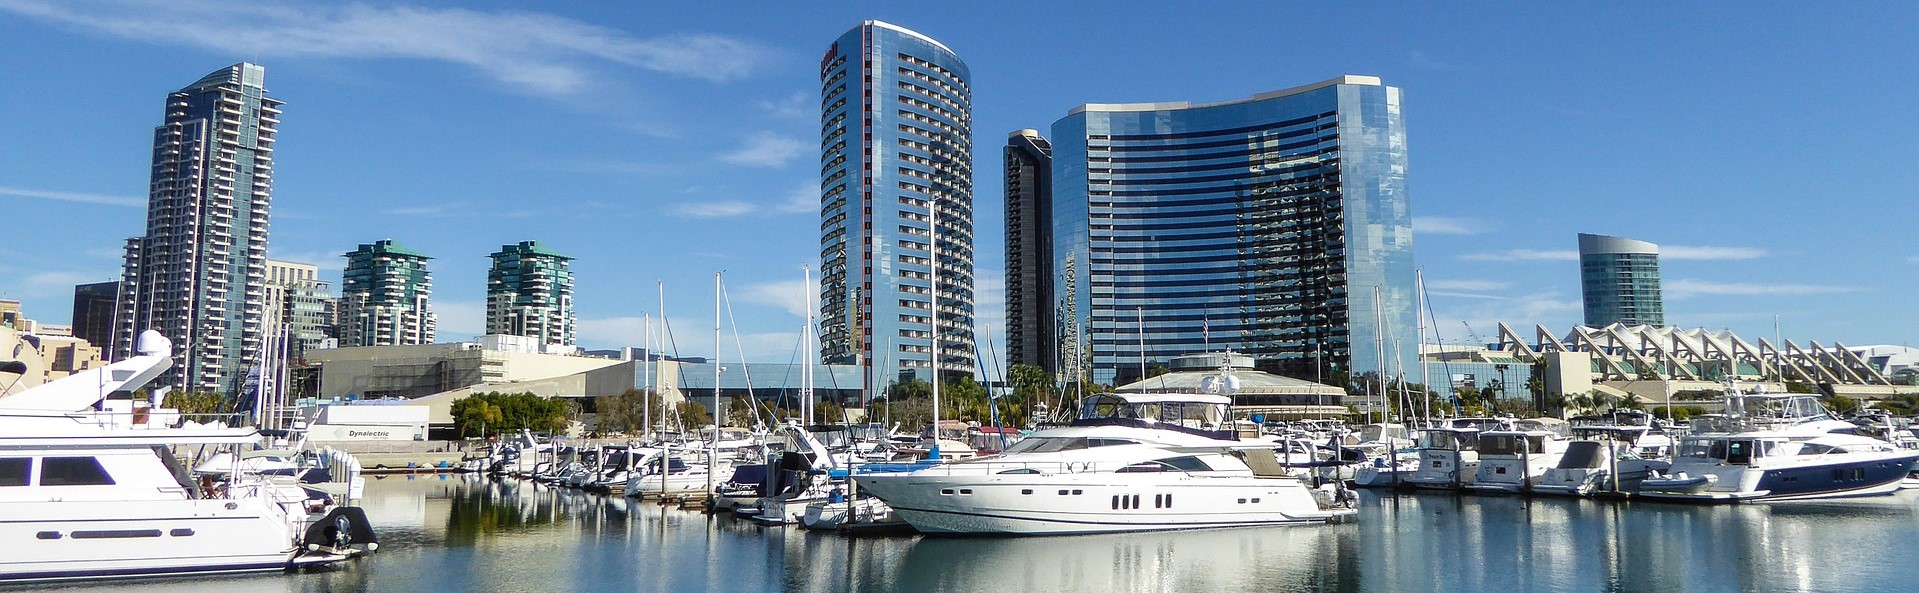 Marina Harbour in San Diego, California | Breast Cancer Car Donations